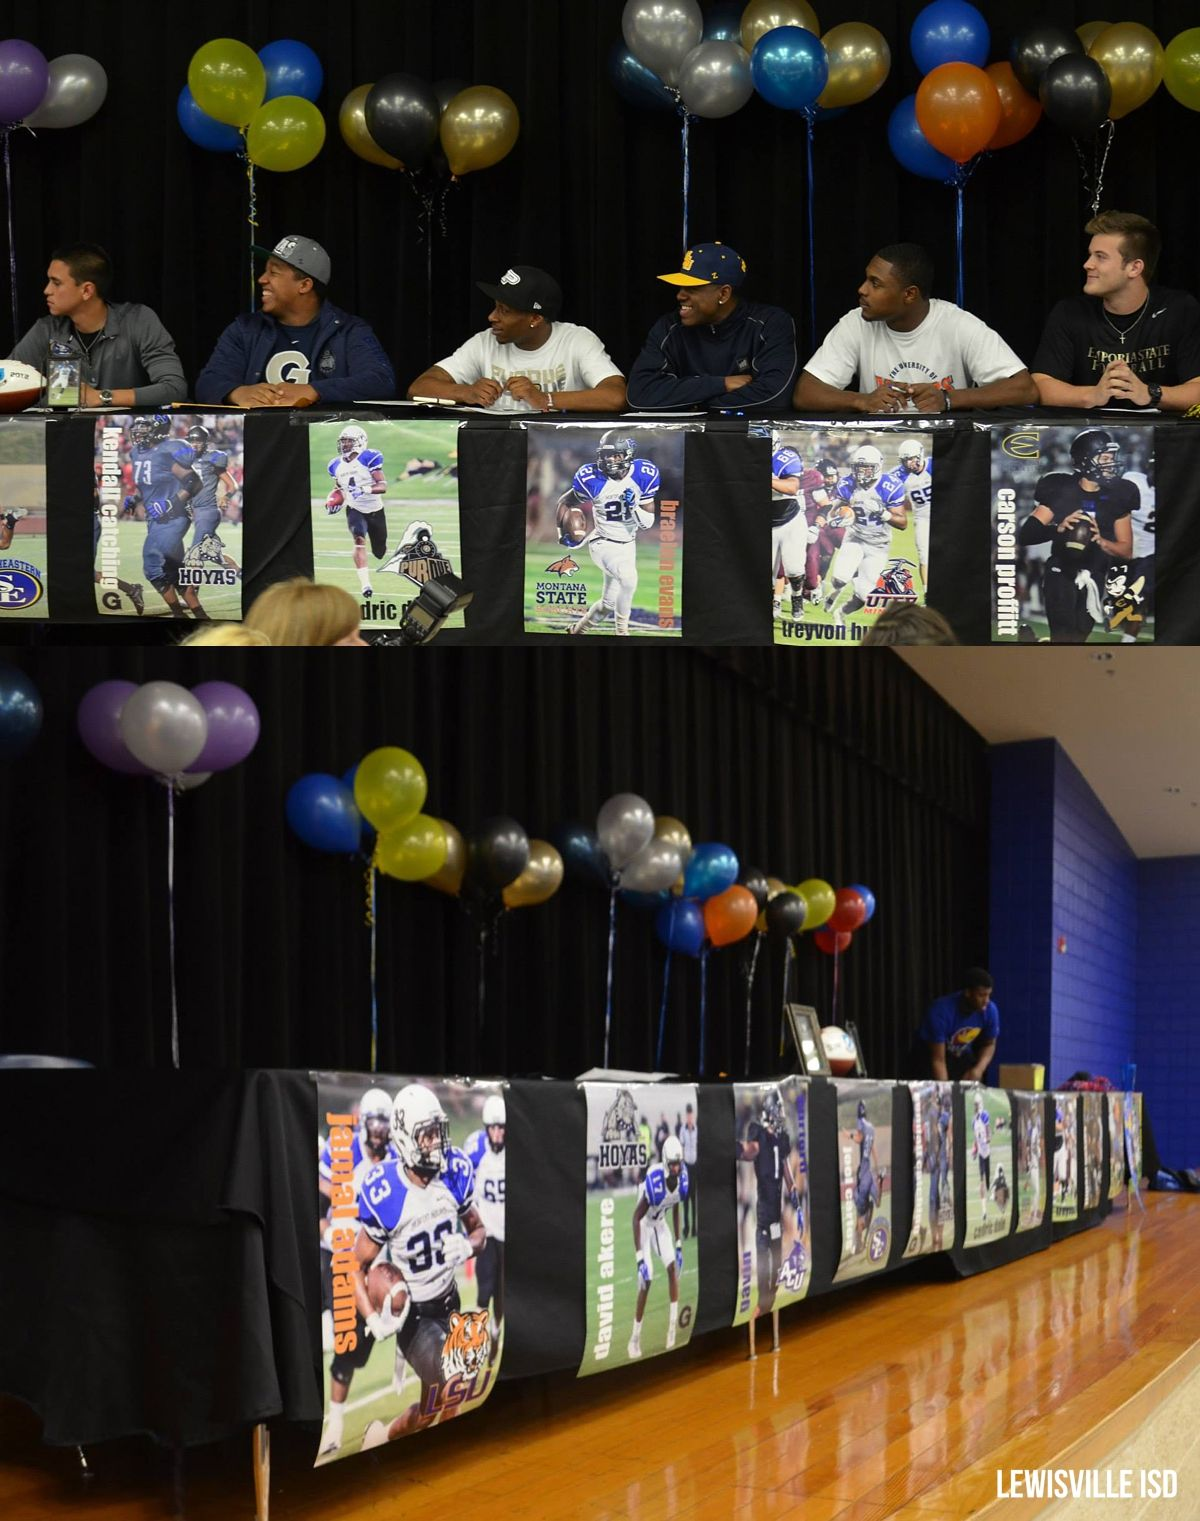 Hebron High School Athletes On National Signing Day Lisd Lewisville Isd Balloons Decorations Post National Signing Day College Signing Day Signing Ideas